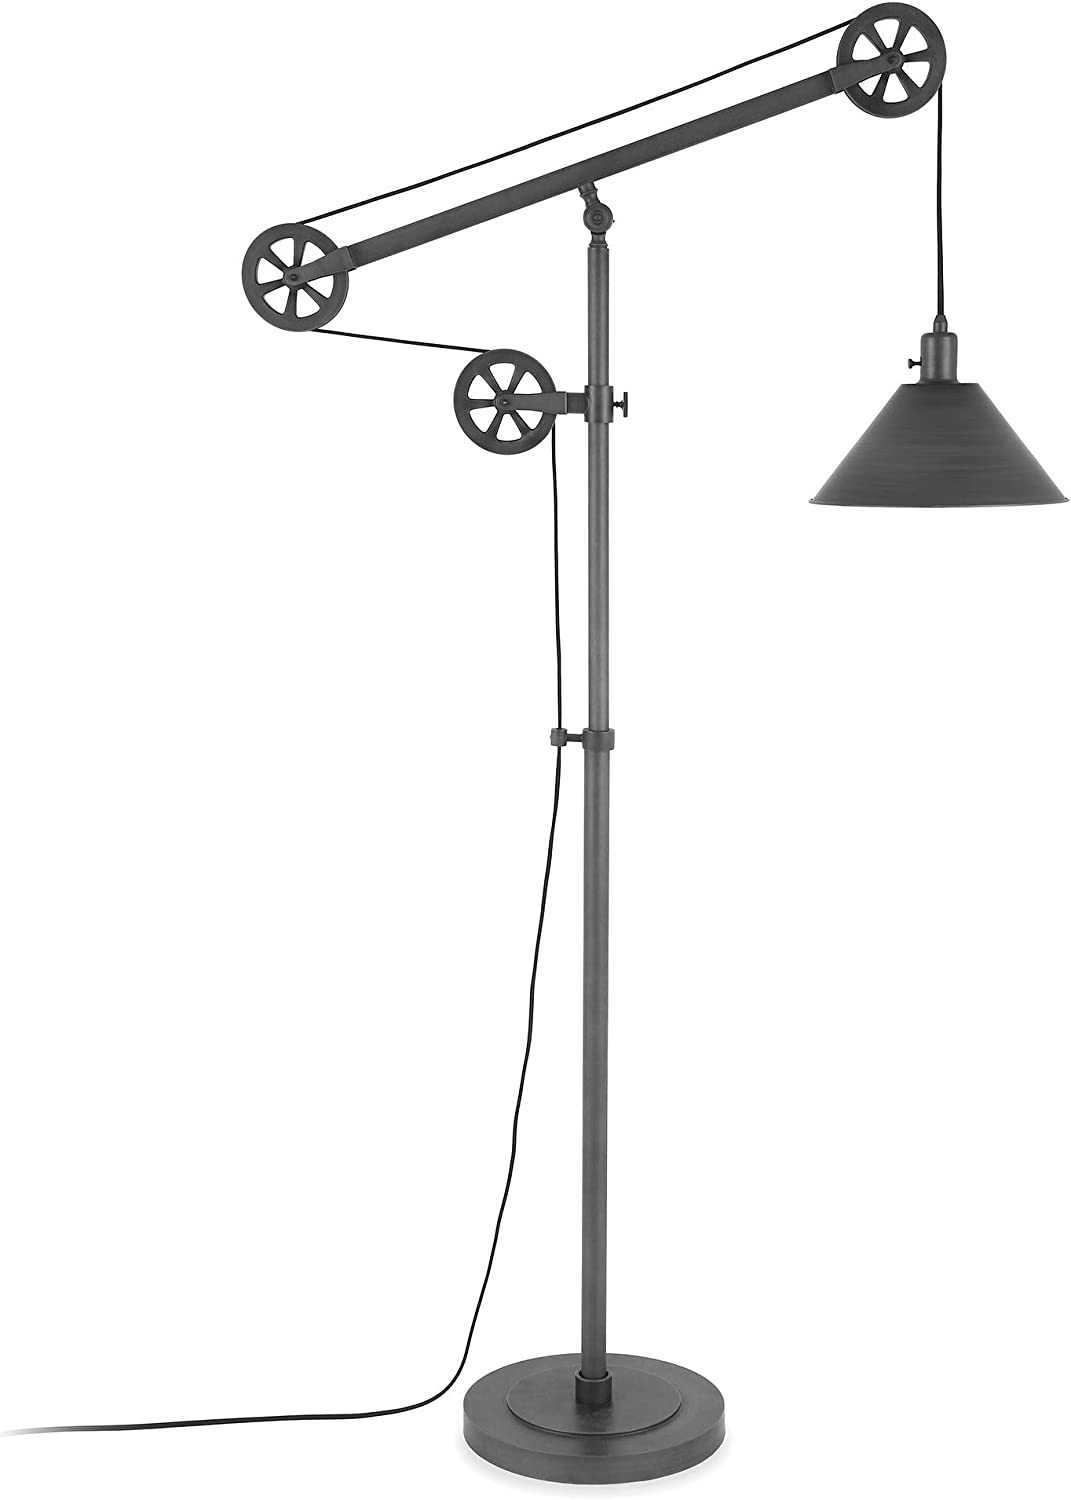 Henn&Hart Modern Industrial Pulley System Floor Lamp $100  Coupon